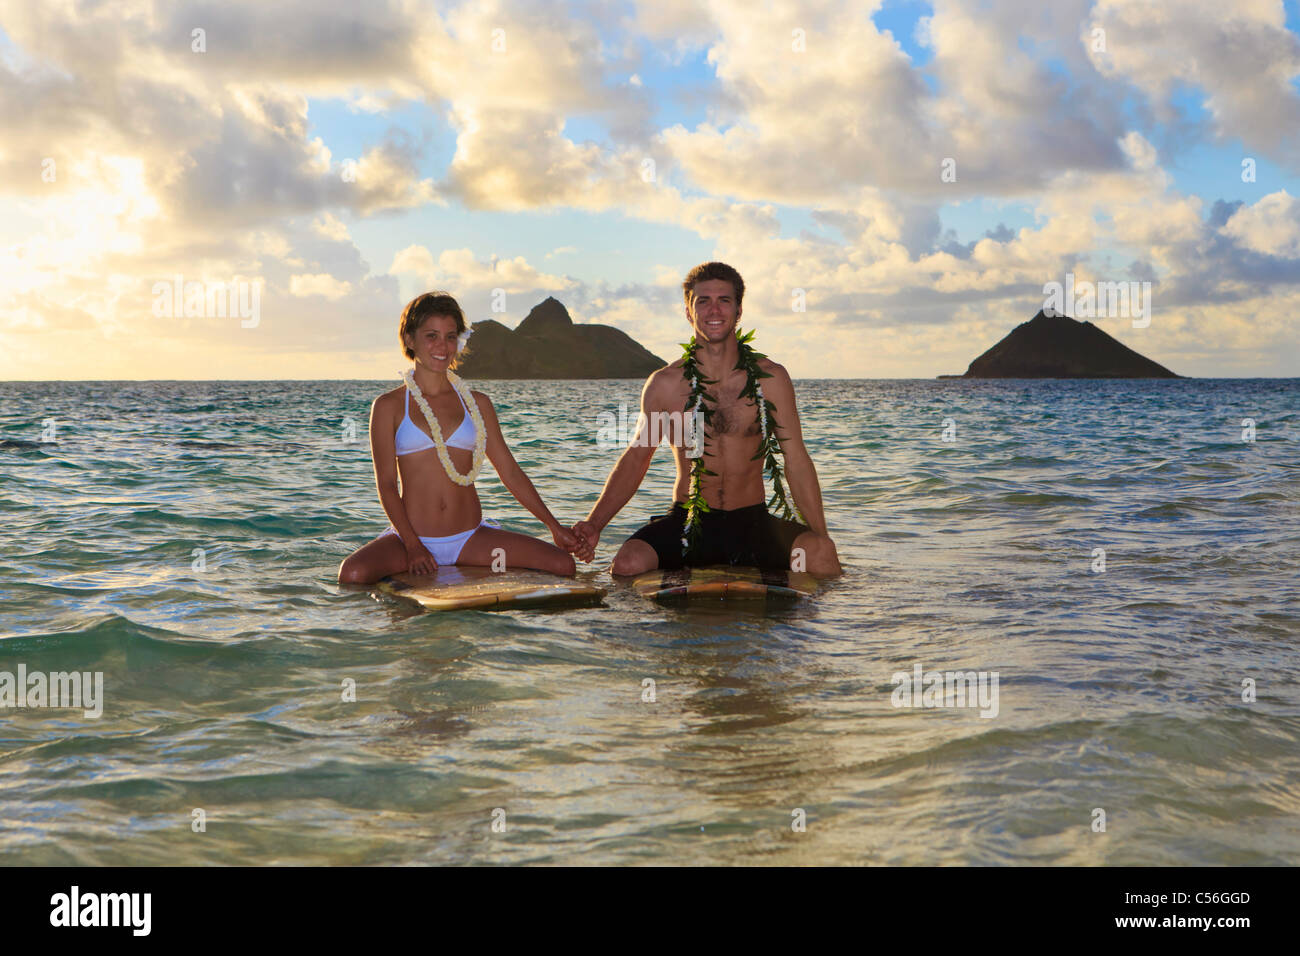 newlywed couple on their surfboards in hawaii - Stock Image